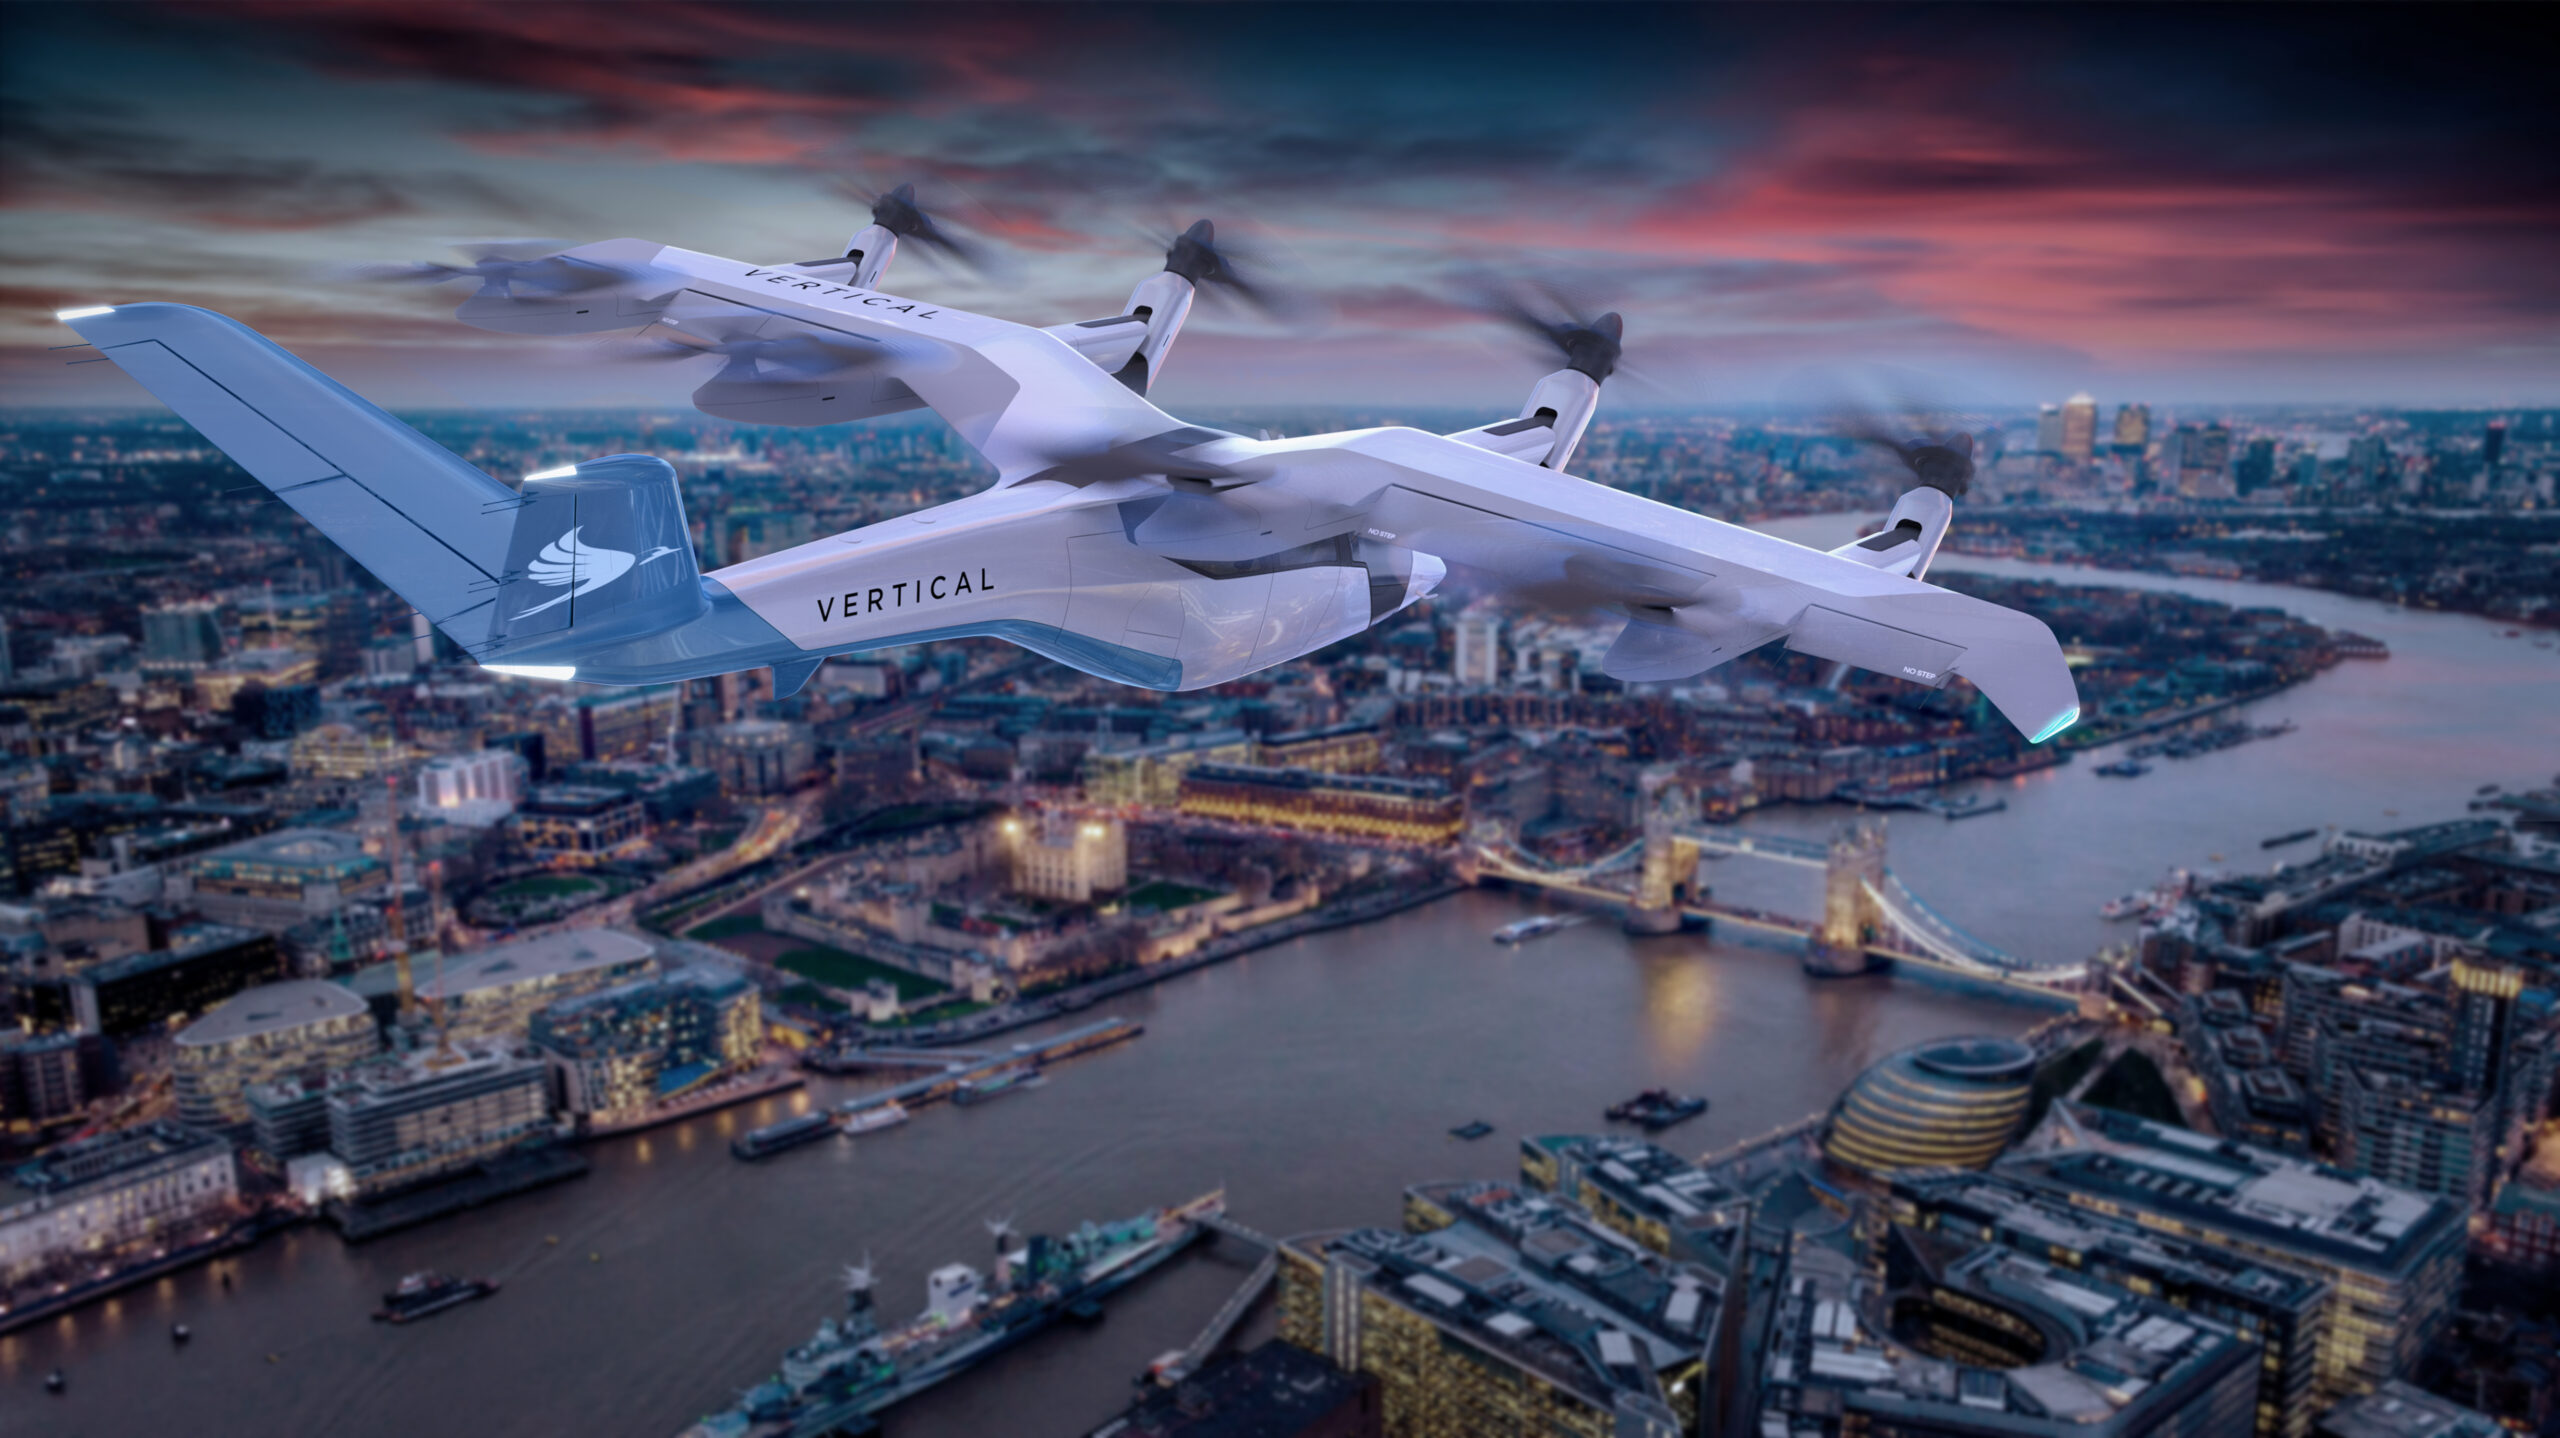 Vertical Aerospace unveils flying taxi design